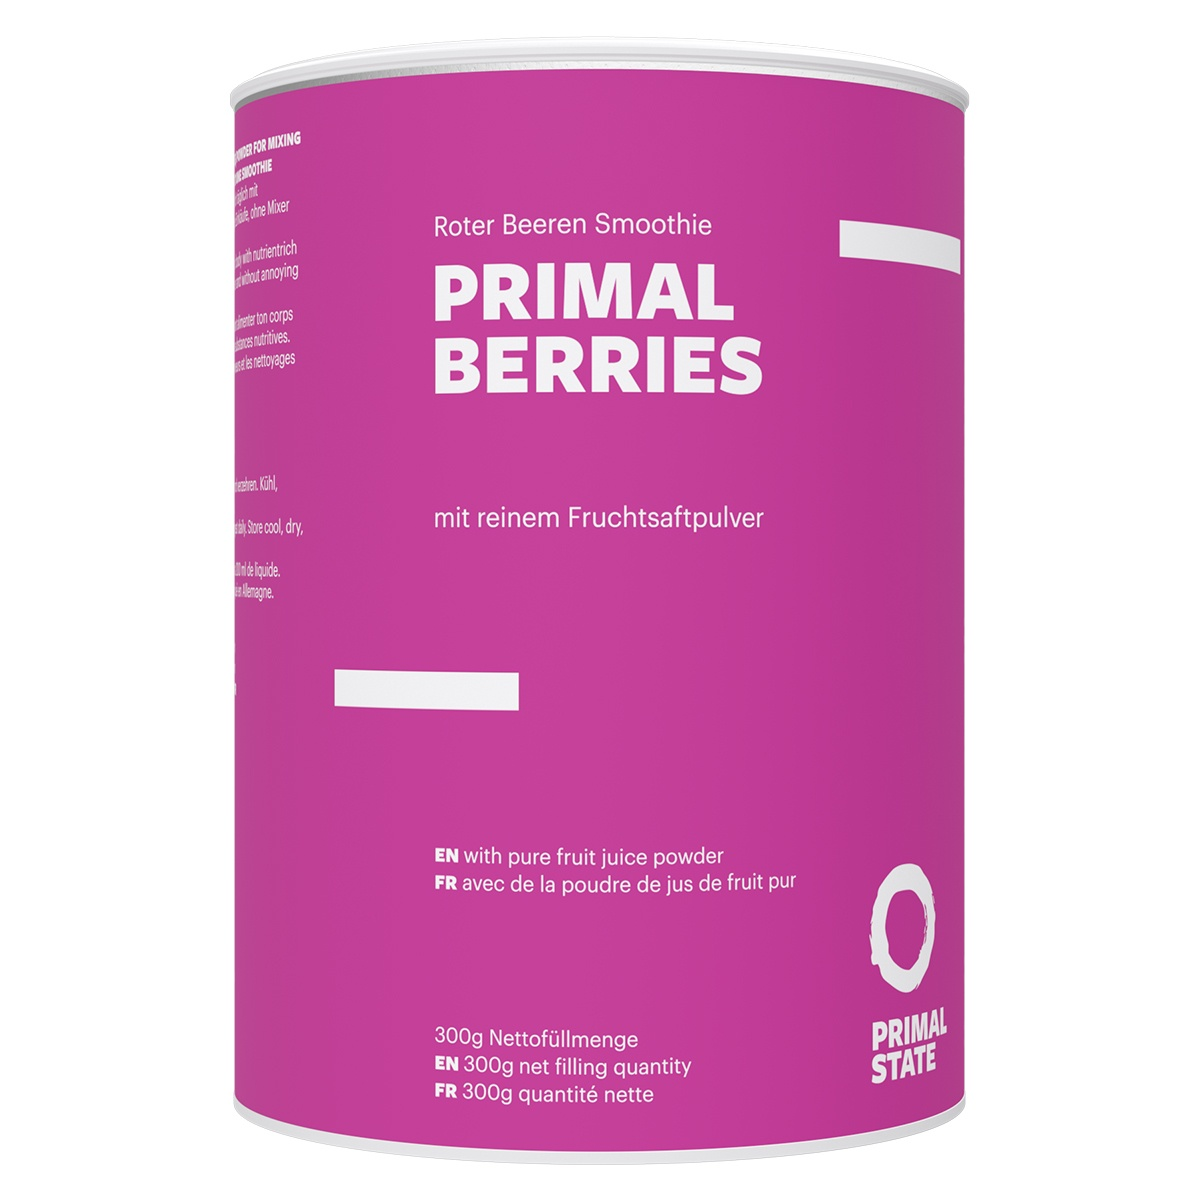 Primal Berries Shop11